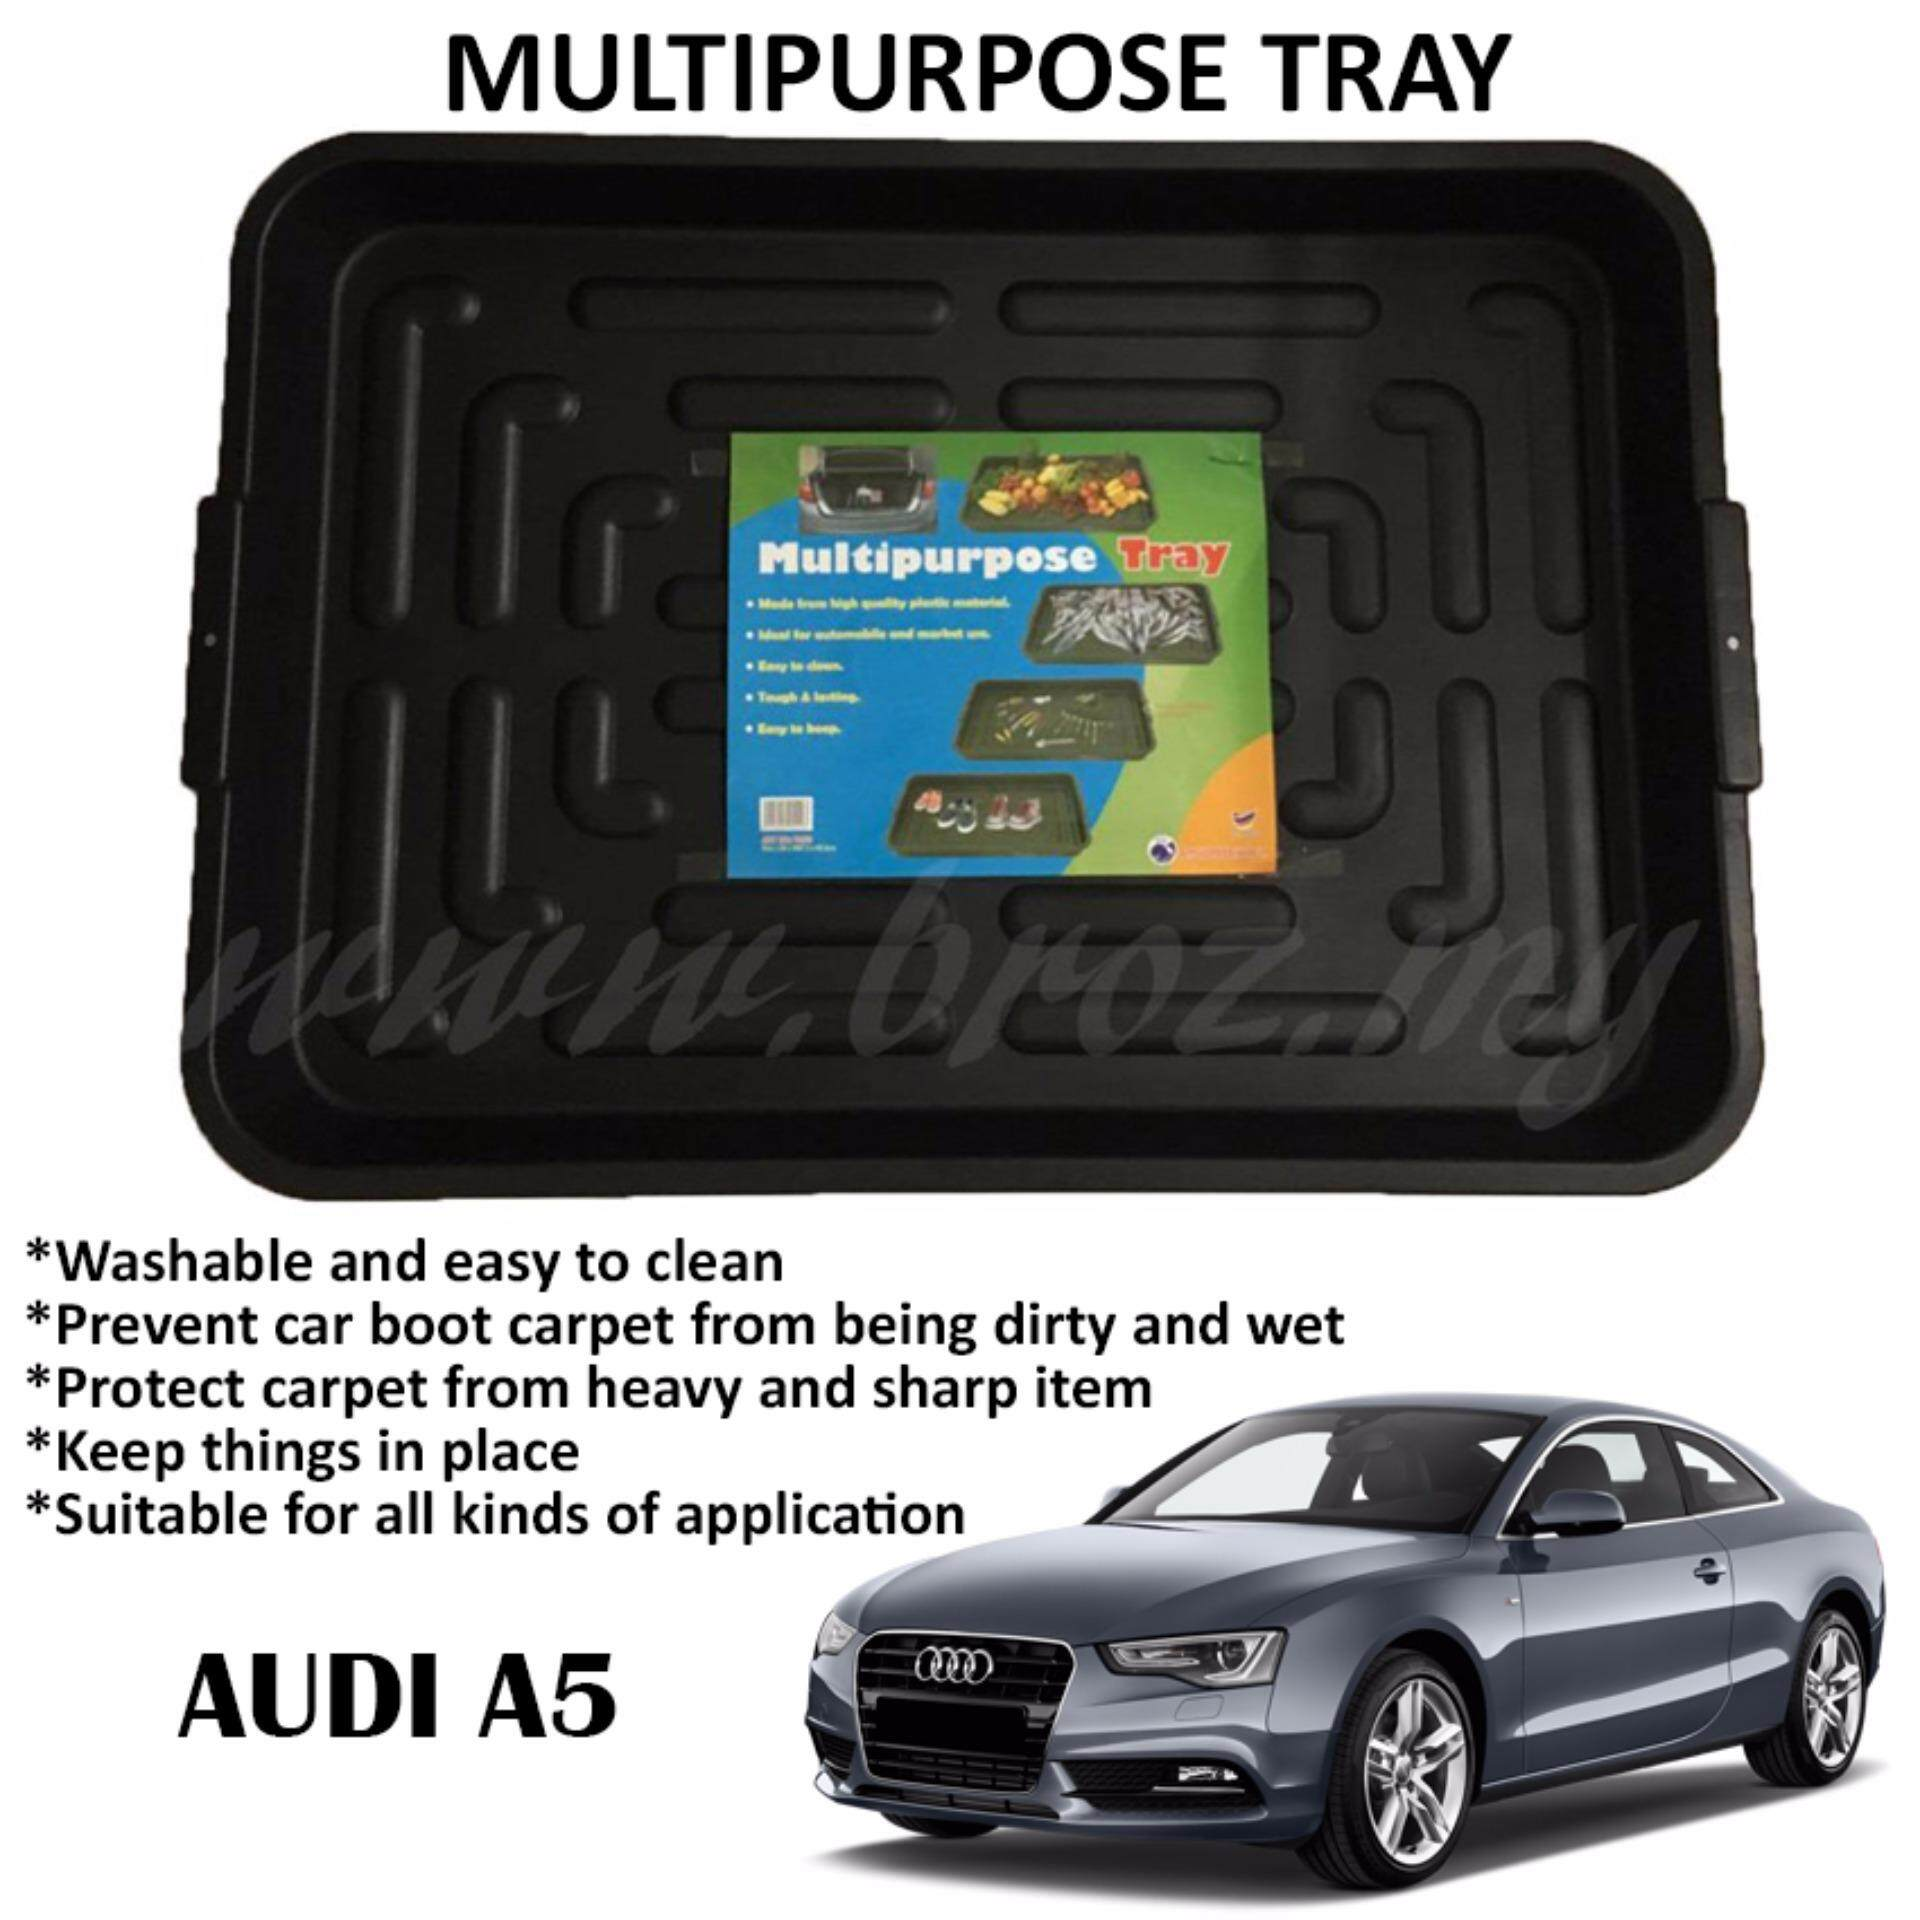 Audi A5 Multipurpose Universal One Tray For All Purpose - For Car Rear Boot (97 x 67.5 x 8.5cm)